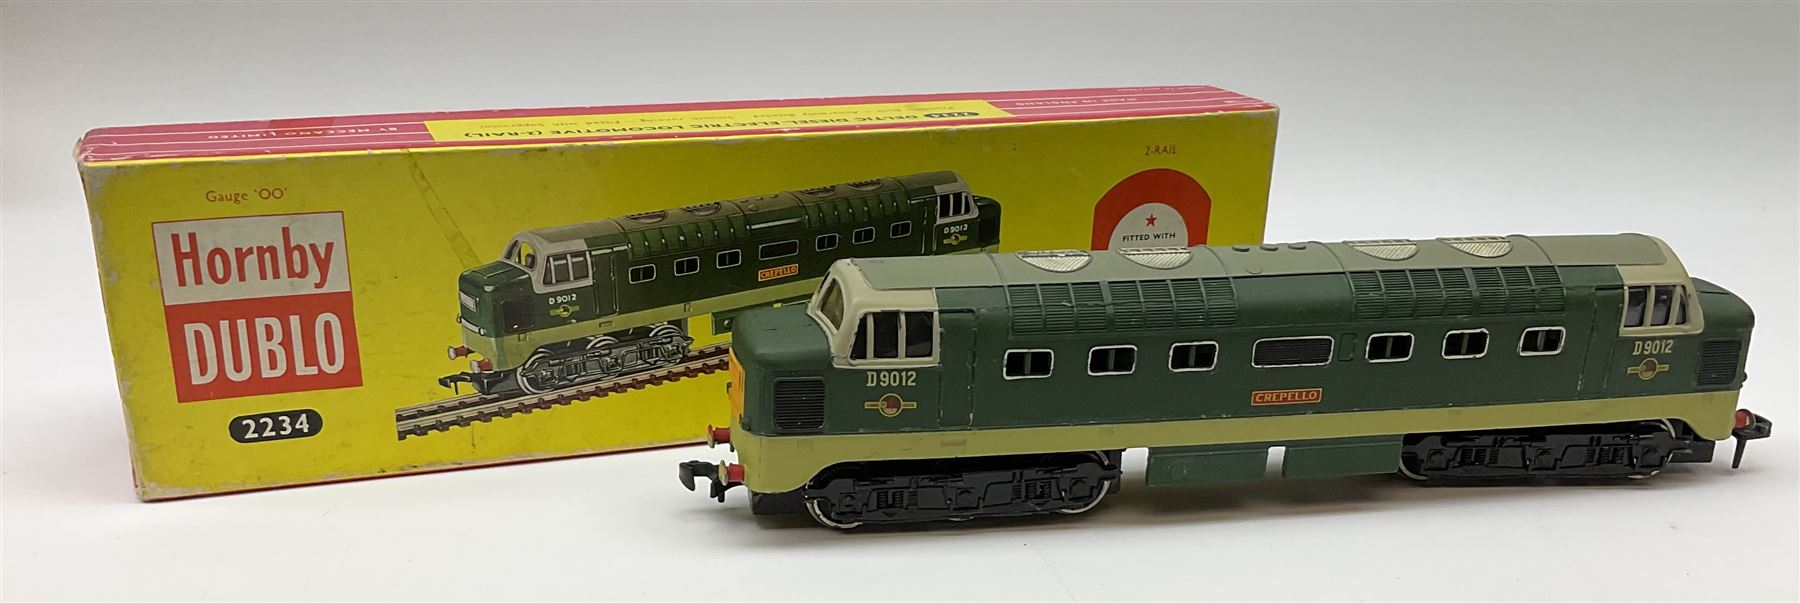 Hornby Dublo - two-rail 2224 Class 8F 2-8-0 locomotive No.48073 with instructions; and 2234 Deltic T - Image 3 of 7